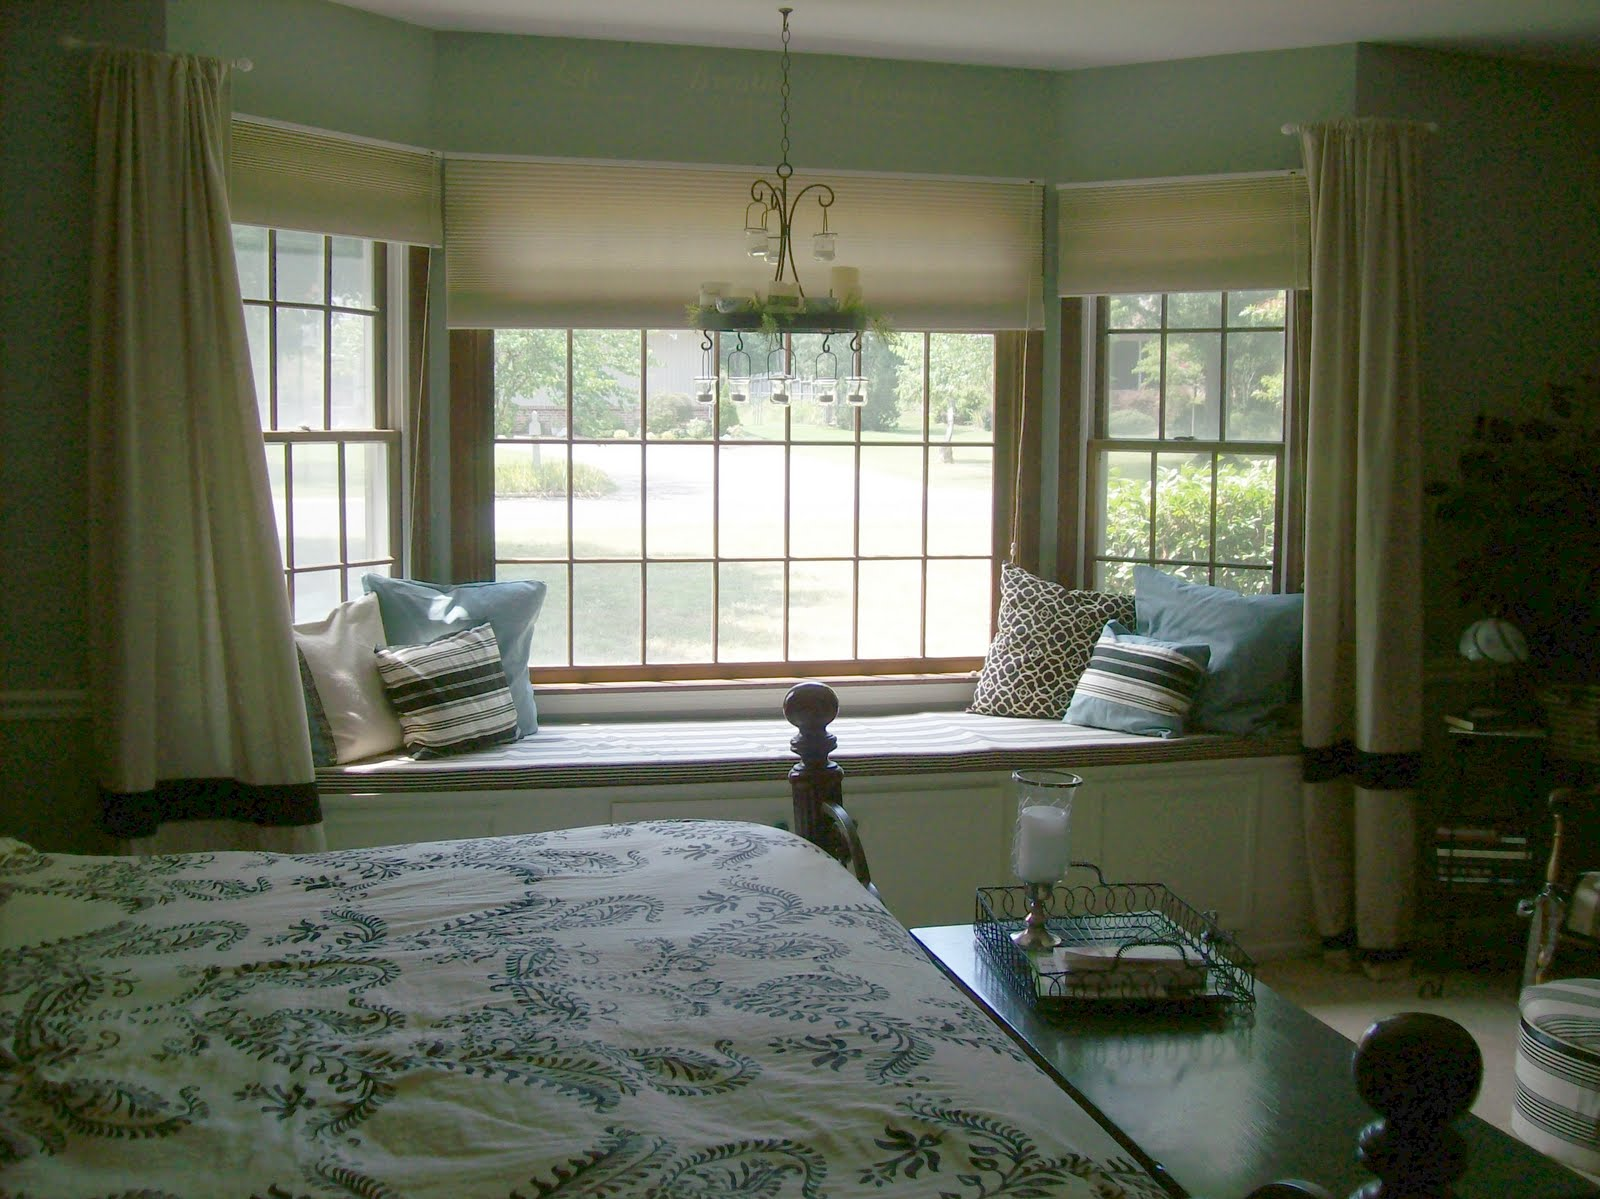 Bedroom bay window designs - Advanced Master Bedroom Bay Window Ideas With For Remodle Pinterest 750x500 Toile